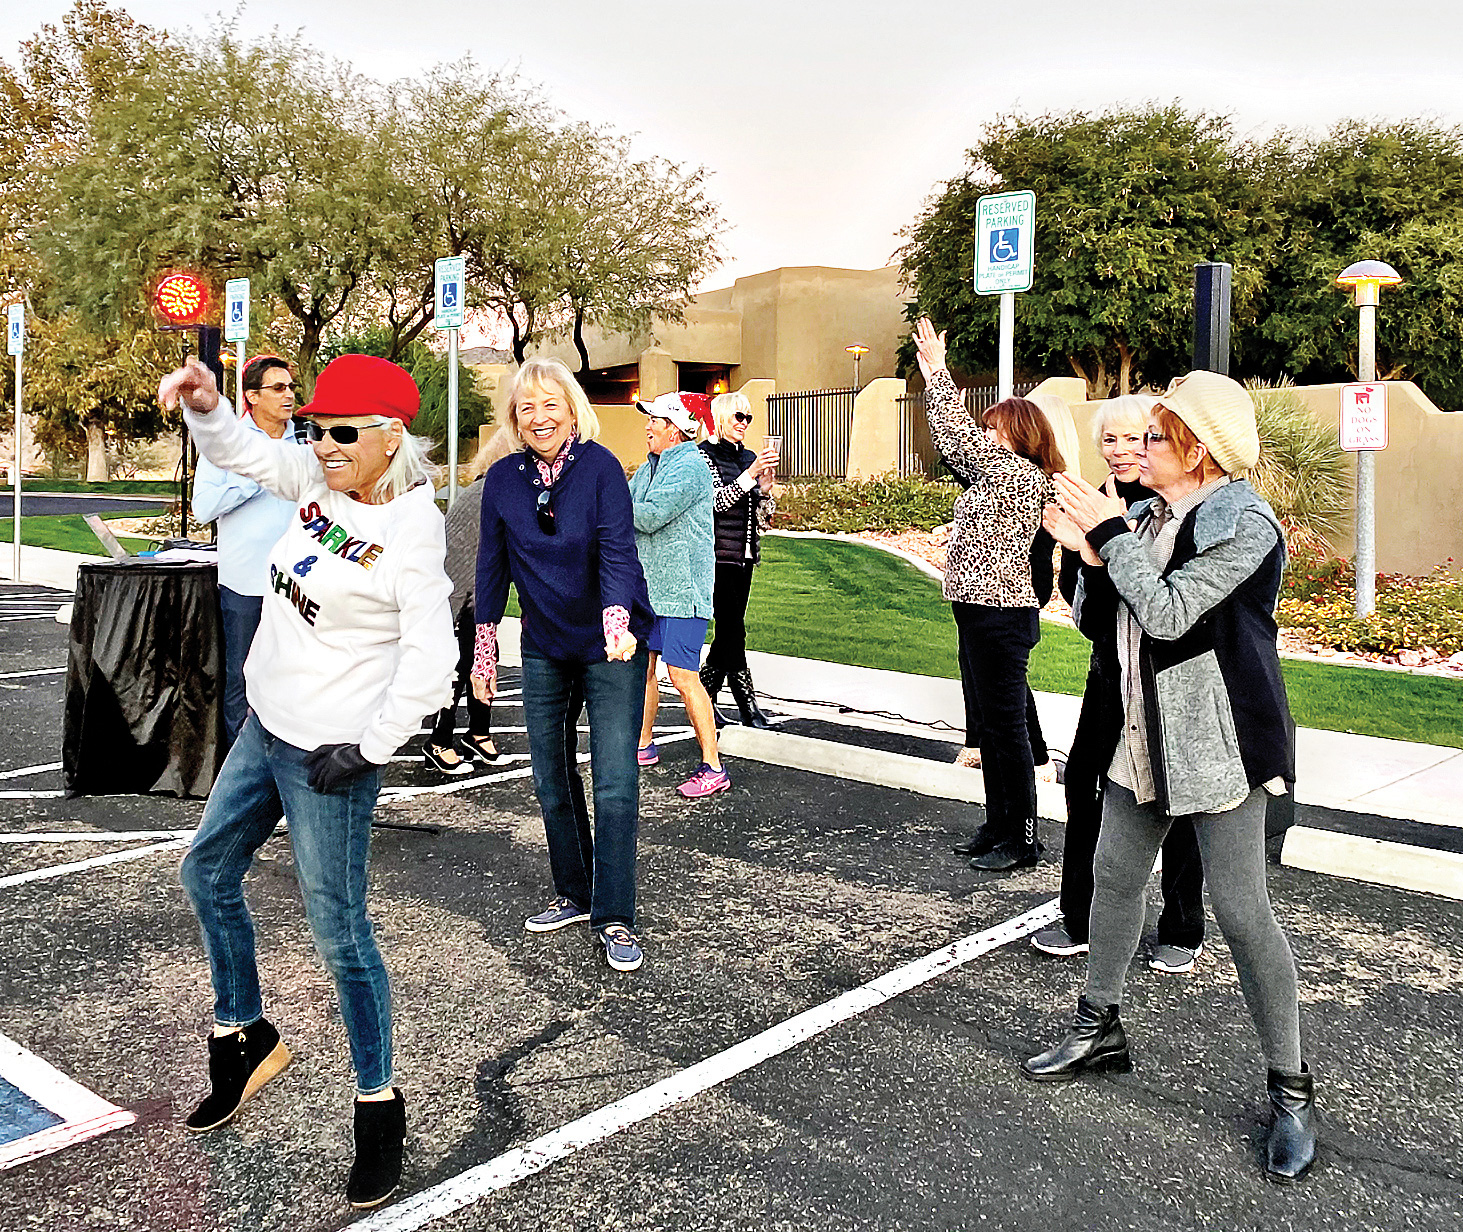 Loose women firing on all cylinders at the Preserve Parking Lot Recharging Station. (Photo by Edward Routzong)